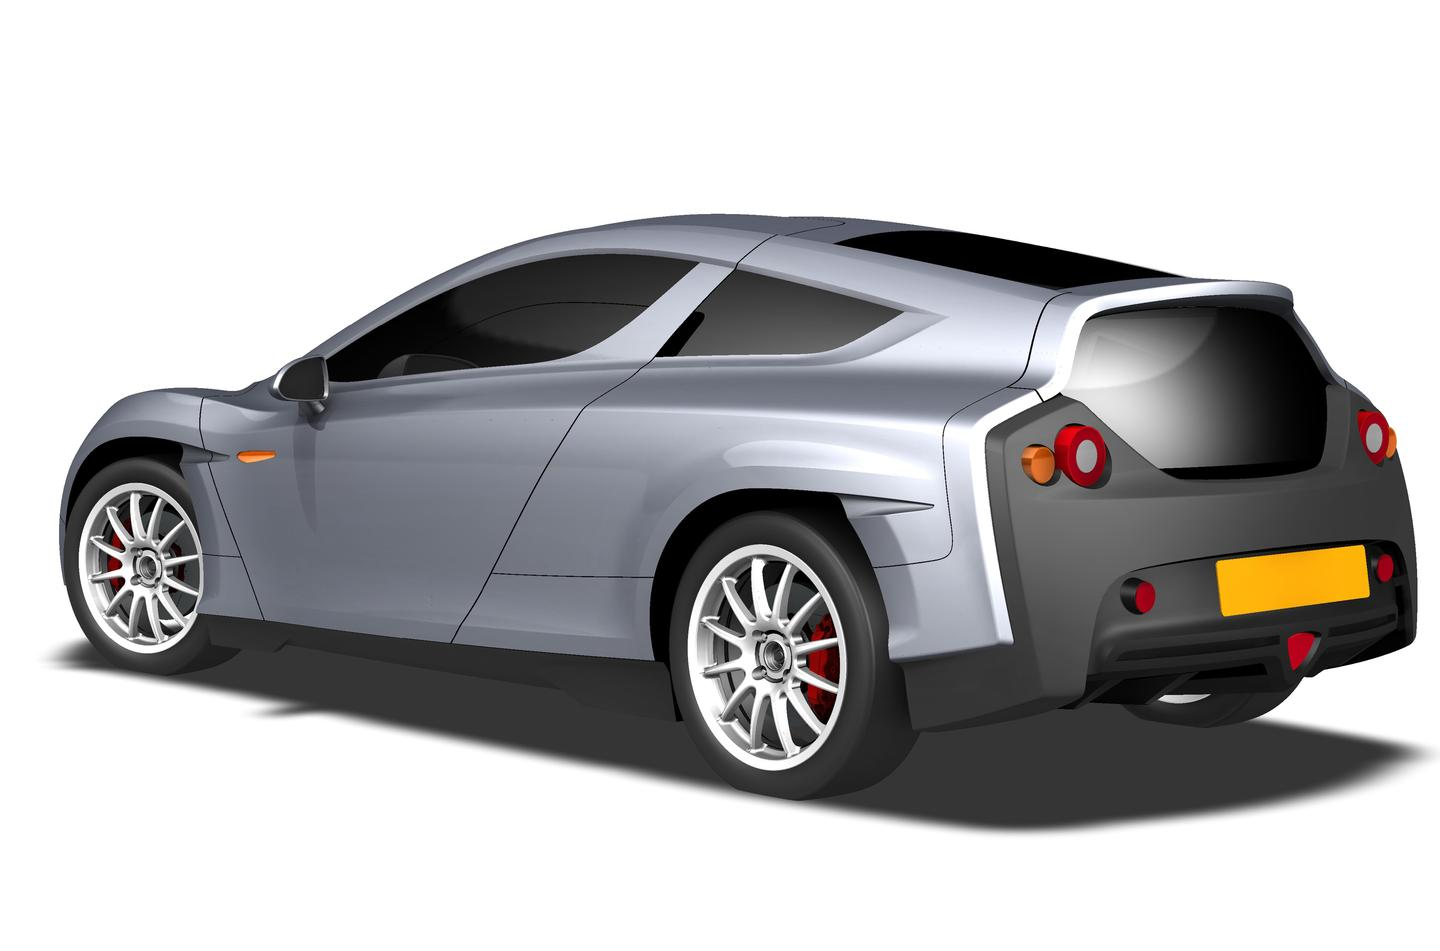 The Delta E-4 Coupe - can go from zero to 60 mph in less than five seconds and has a top speed of 139 mph